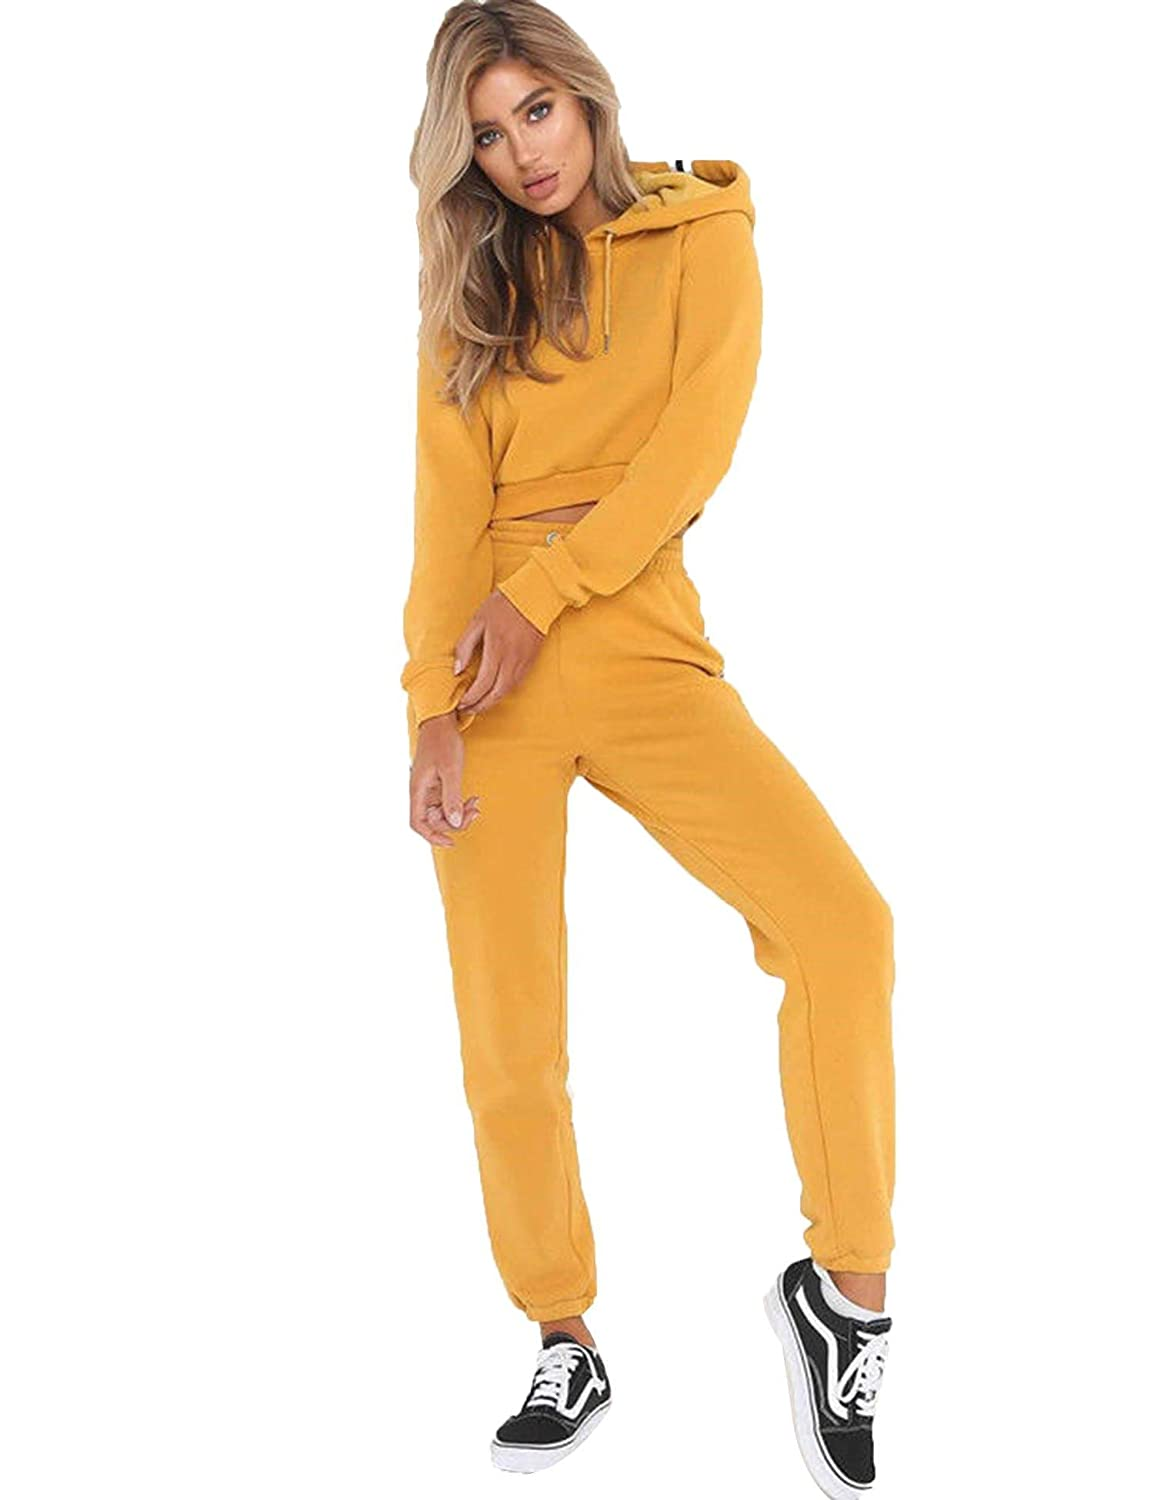 Ceanfly Women Tracksuit Hoodies Drawstring Elastic Waist Patchwork Crop Tops Outfits Lace up Crop Hoody Pants Sweatsuits Set